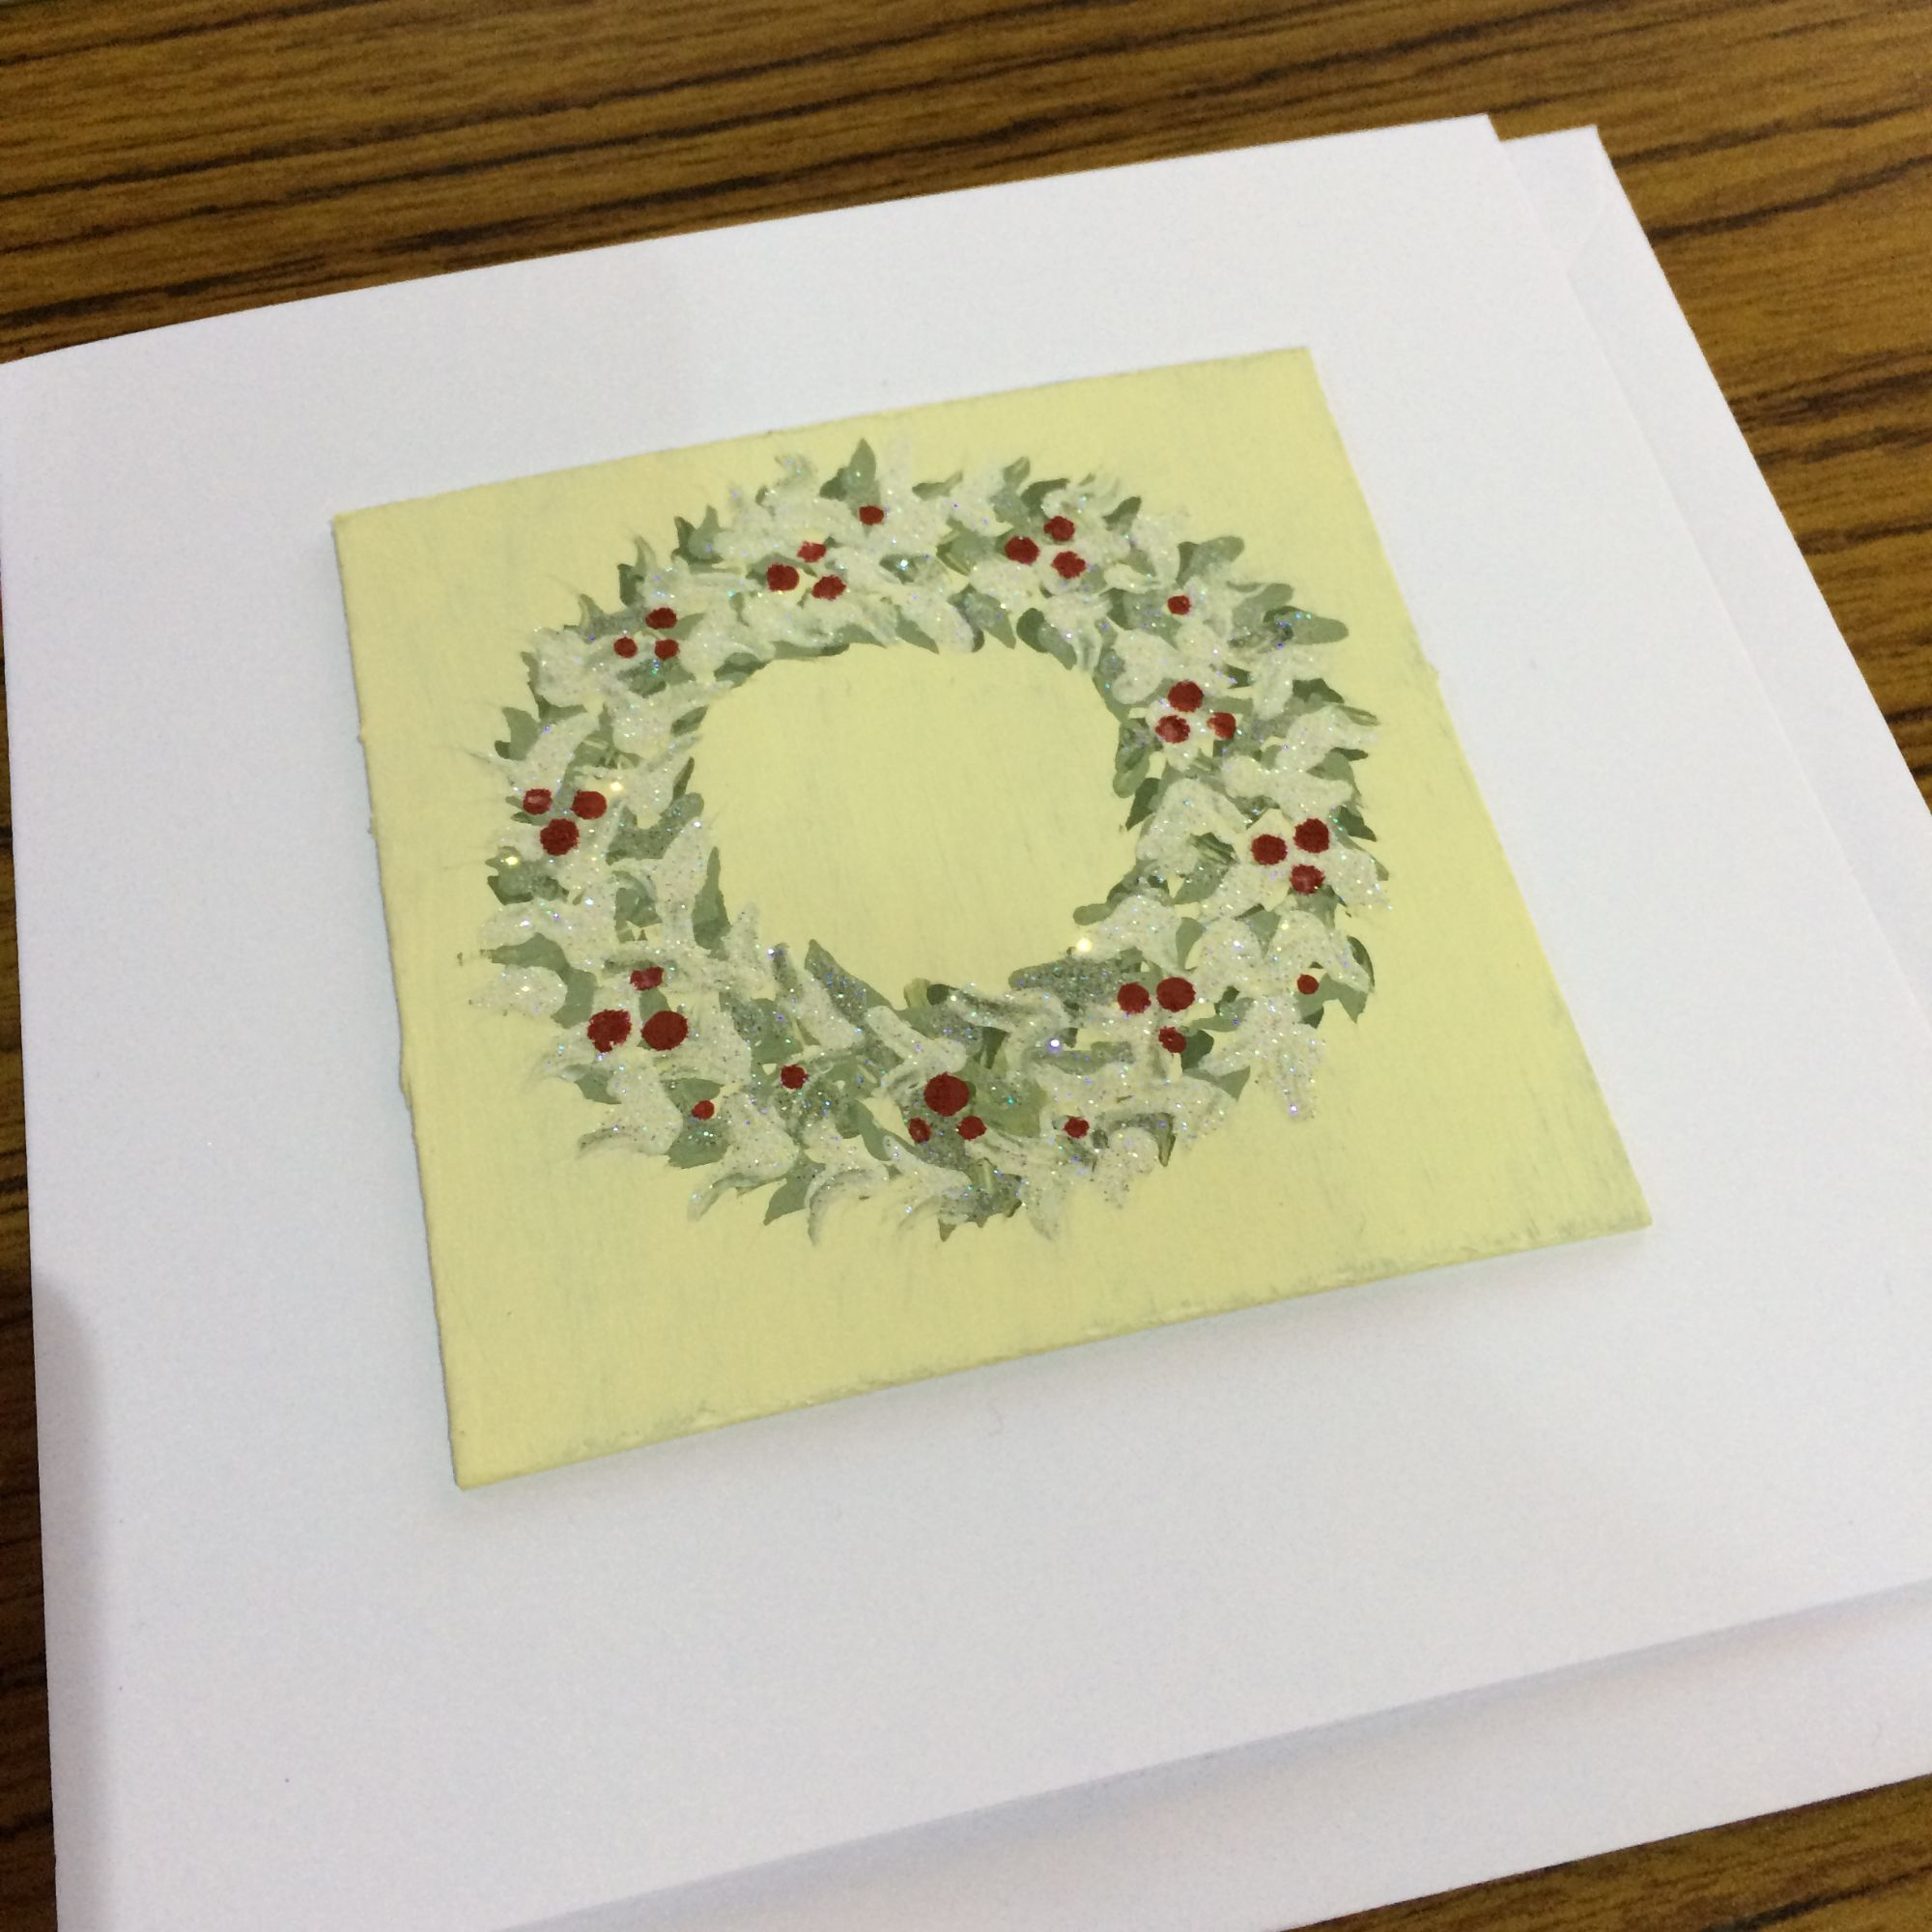 Festive Folk Art Painting Workshop - Christmas Wreath